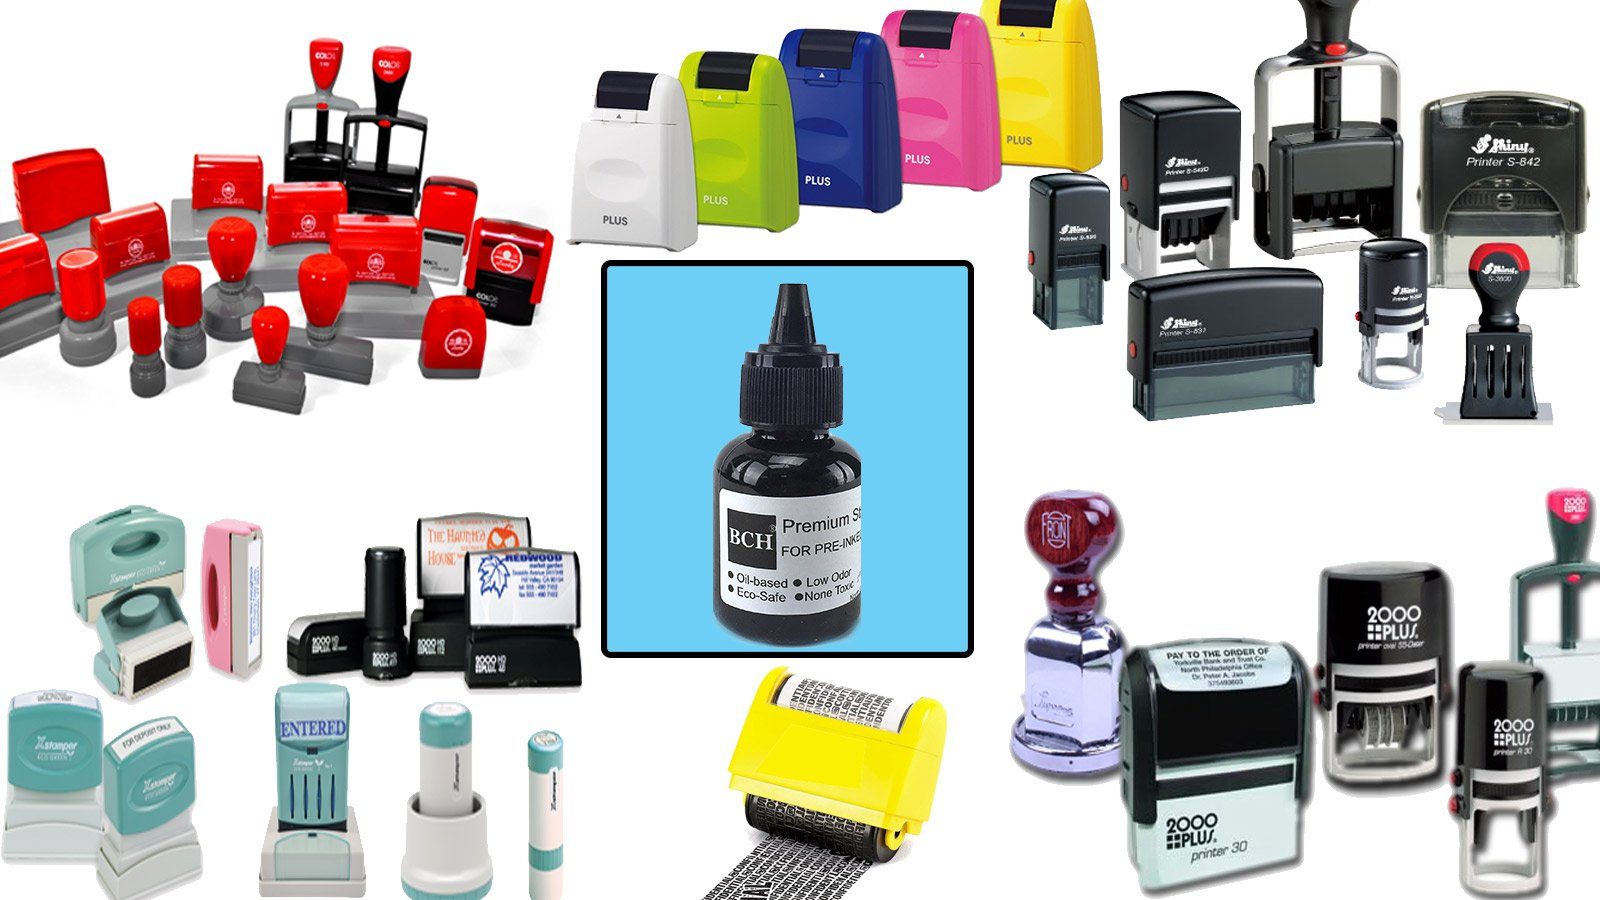 Black Stamp Refill Ink by BCH - Oil-Based 1 oz Bottle for Roller Stamp or Pre-Inked Rubber Gel Pads - 30ml by BCH (Image #3)